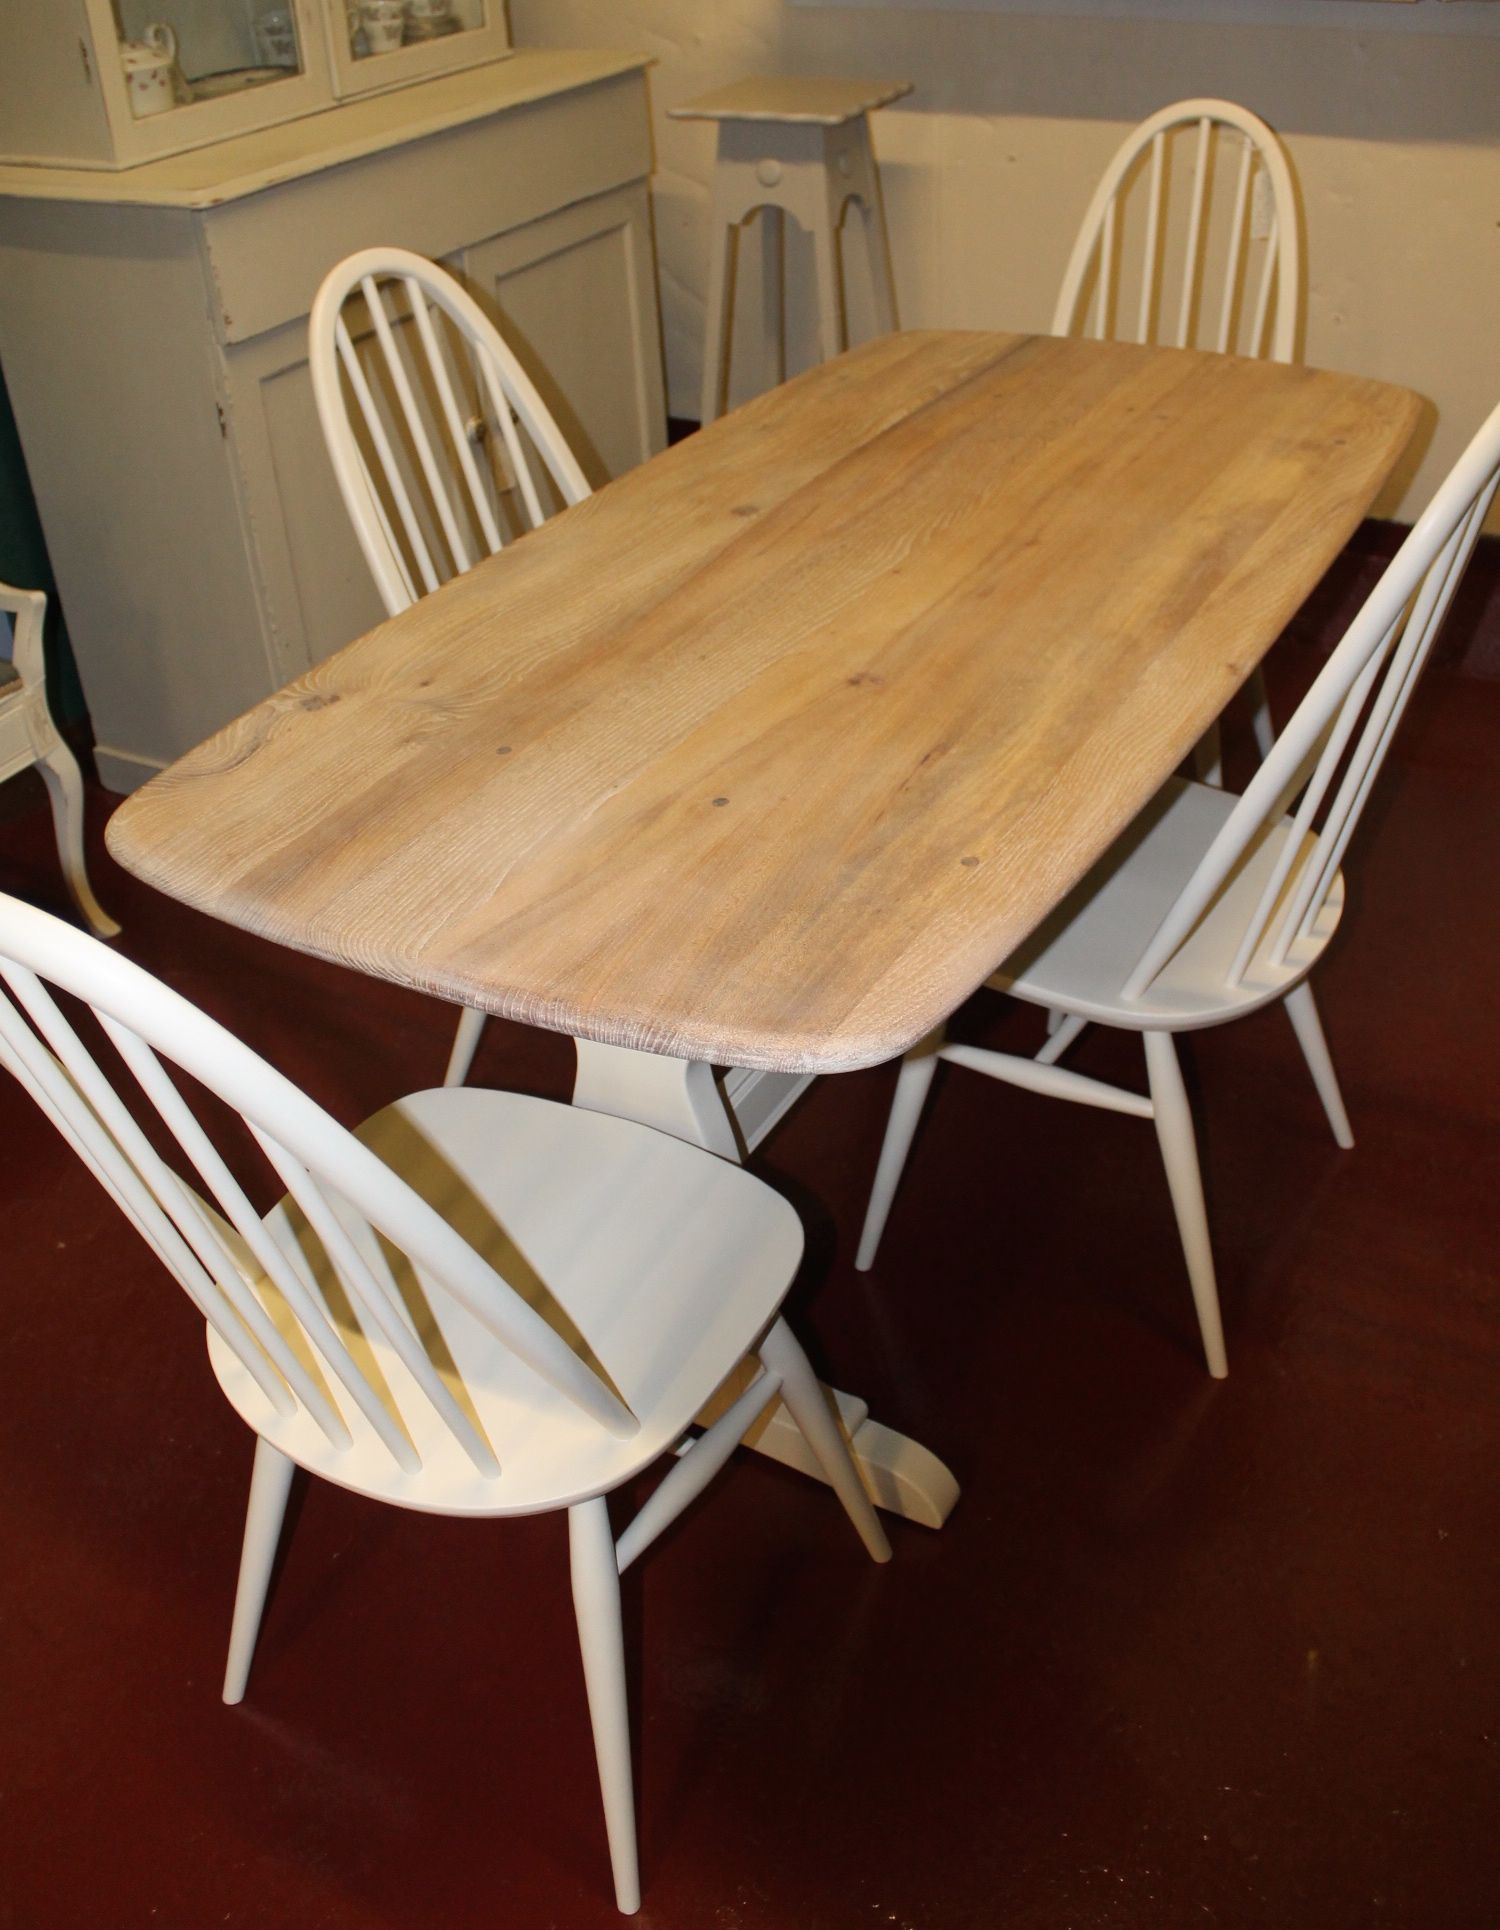 Ercoldiningtableandfourchairs £36500  Interiors Enchanting Second Hand Ercol Dining Room Furniture Design Ideas